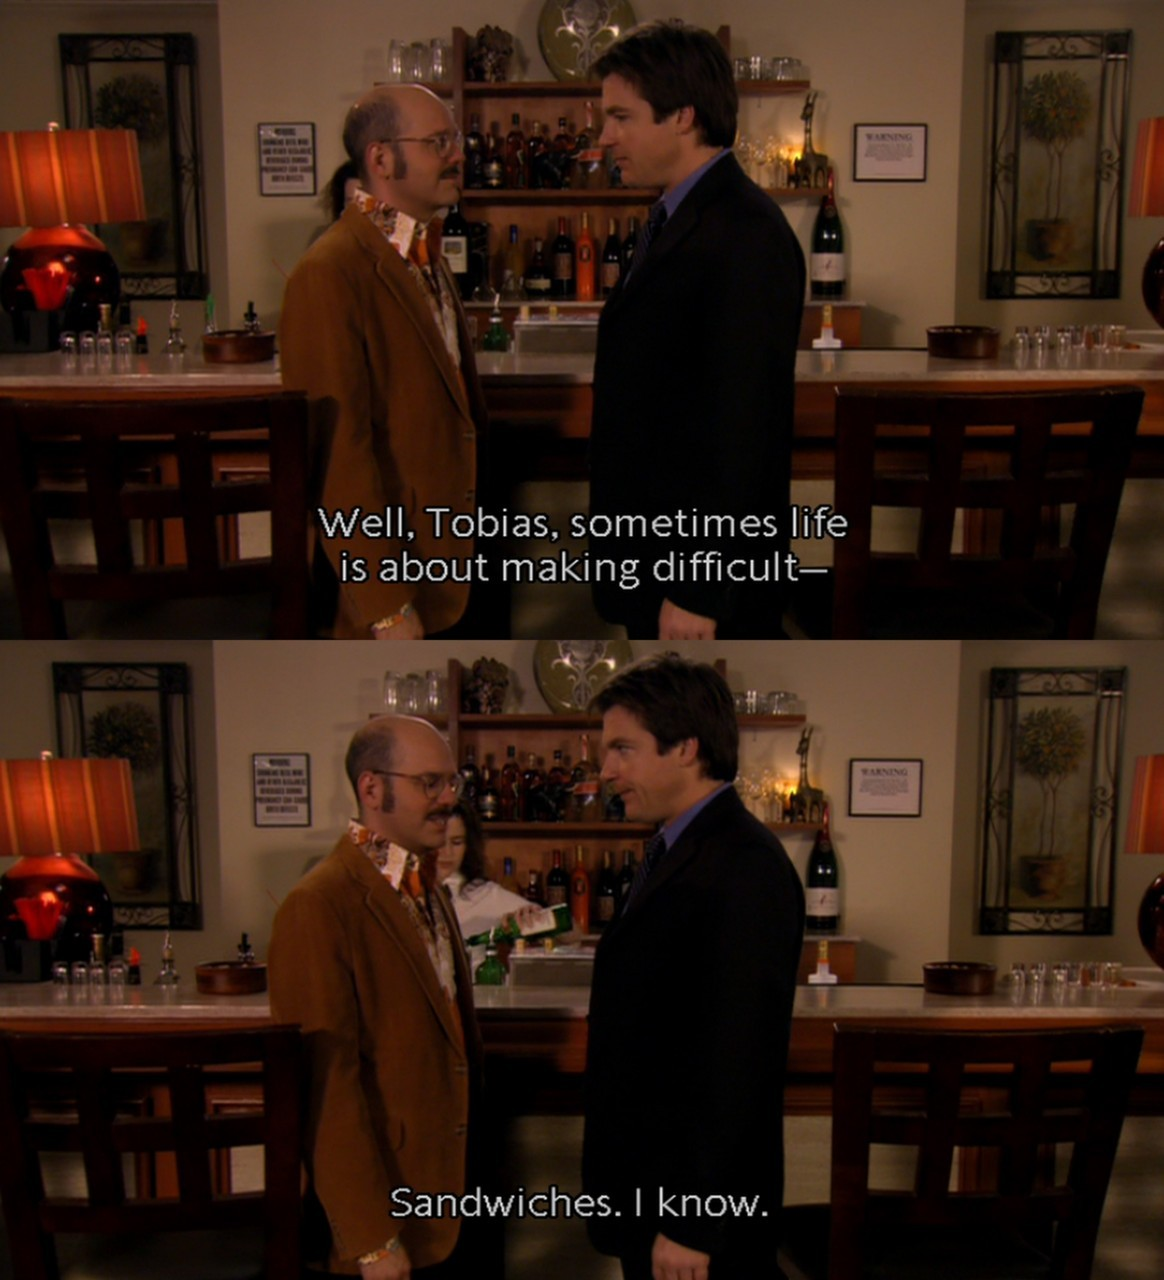 IF YOU AREN'T FOLLOWING THEBLUTHCOMPANY HERE ON TUMBLR, YOU ARE DOING THE INTERNET WRONG. ALSO, WE STILL EXIST AND OUR THIRD RECORD IS ALMOST DONE.  HAPPY SPRING XO